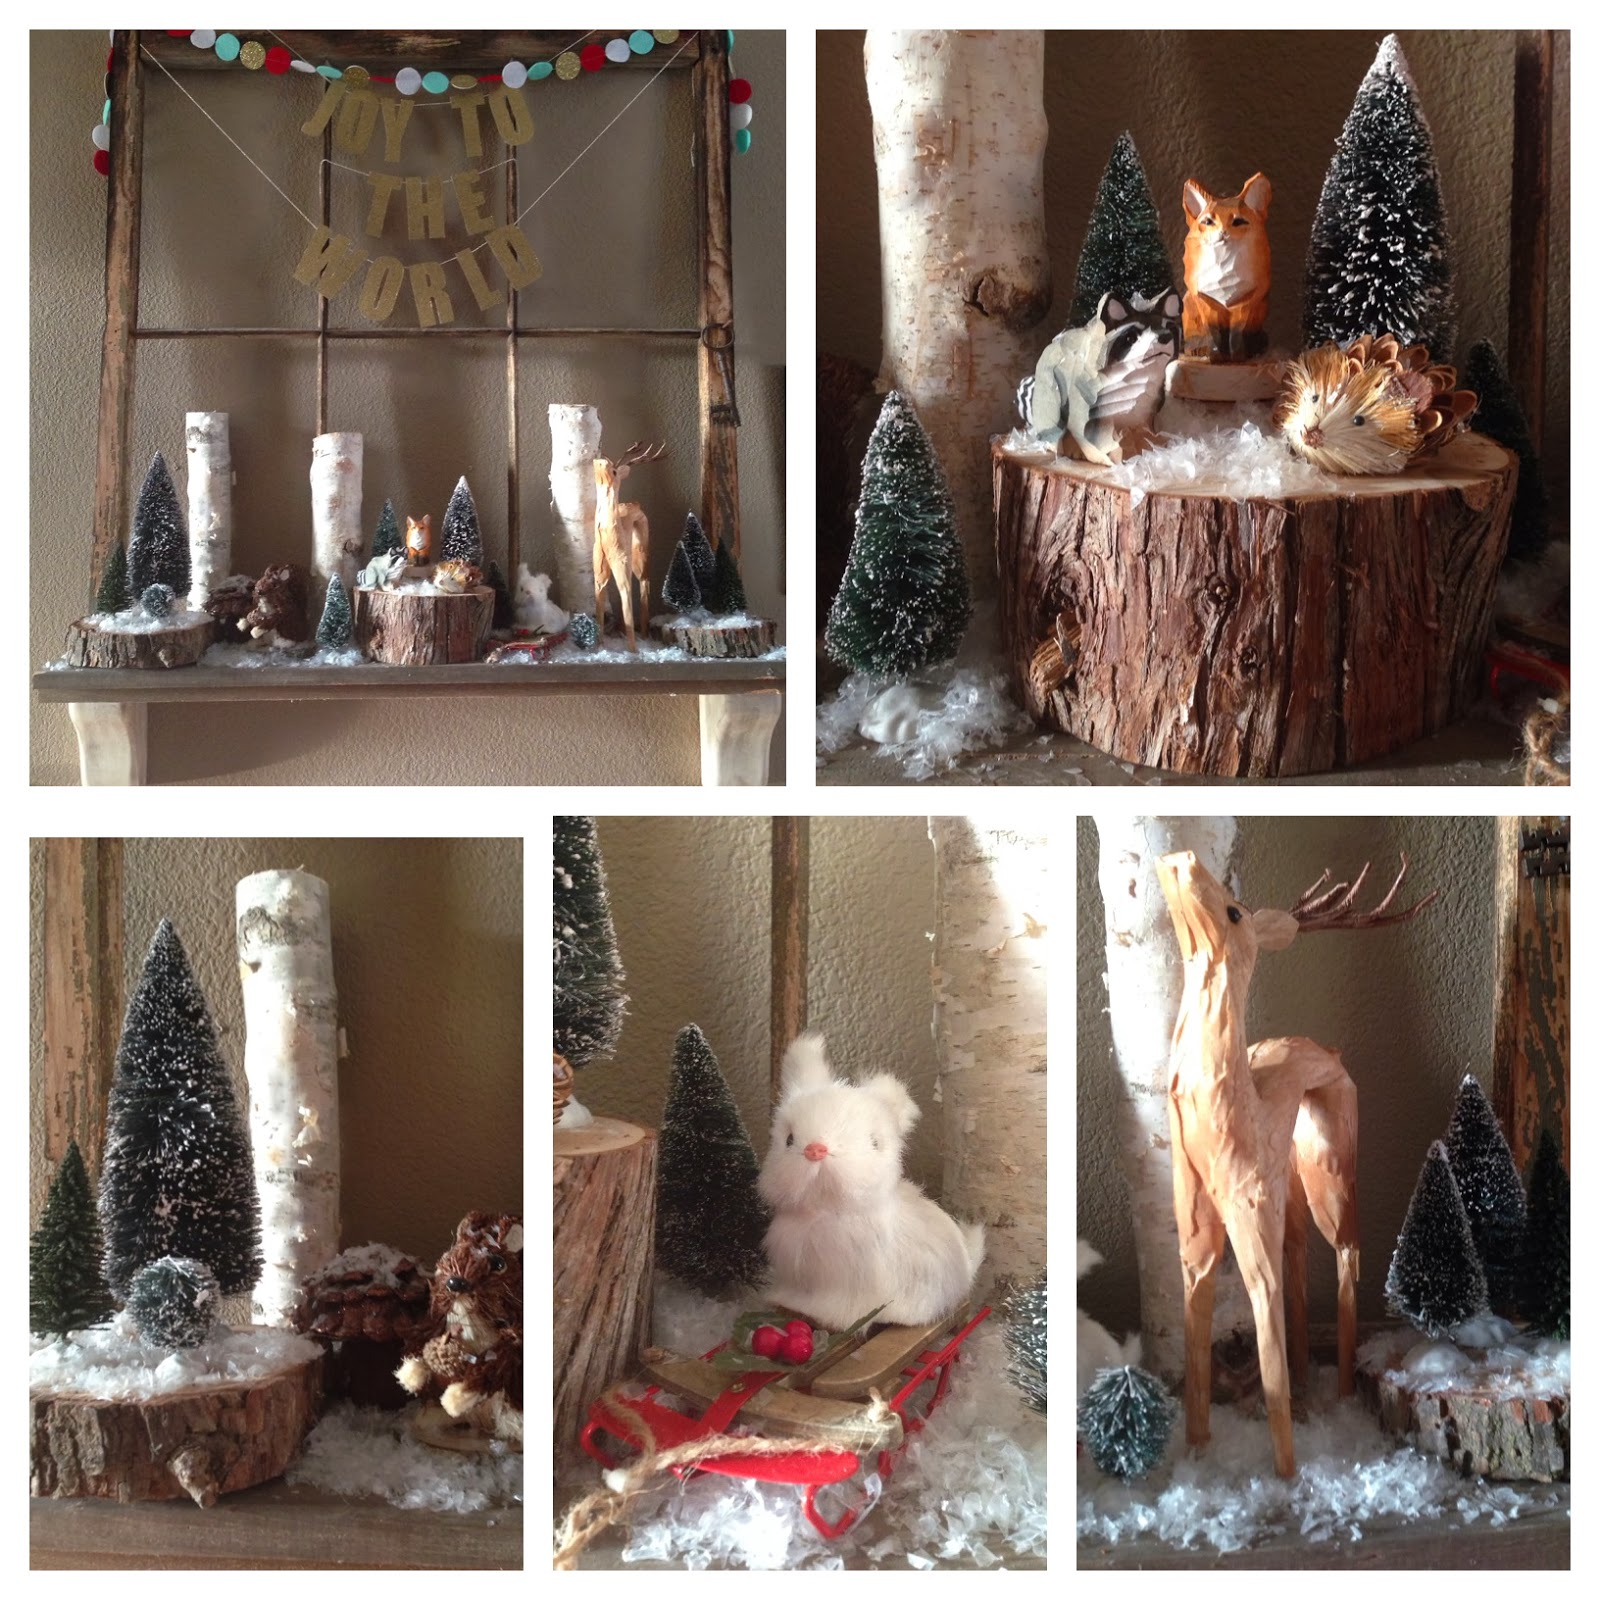 Bottle brush woodland animals - I Used Mixed Sizes Of Bottle Brush Trees And Snow To Add To The Scene